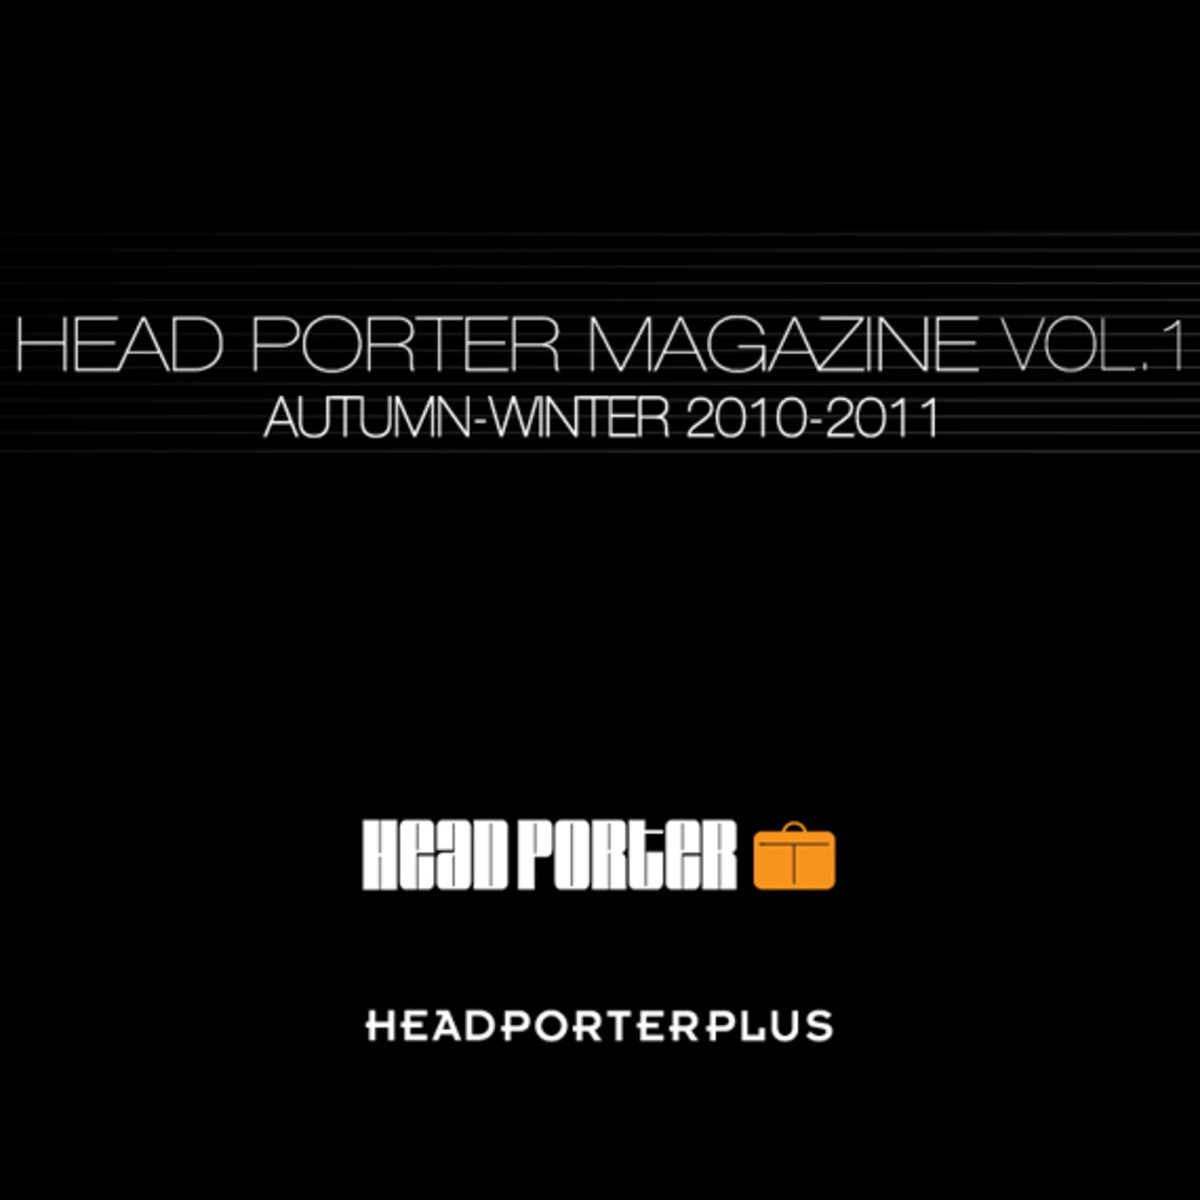 head-porter-magazine-vol-1-01